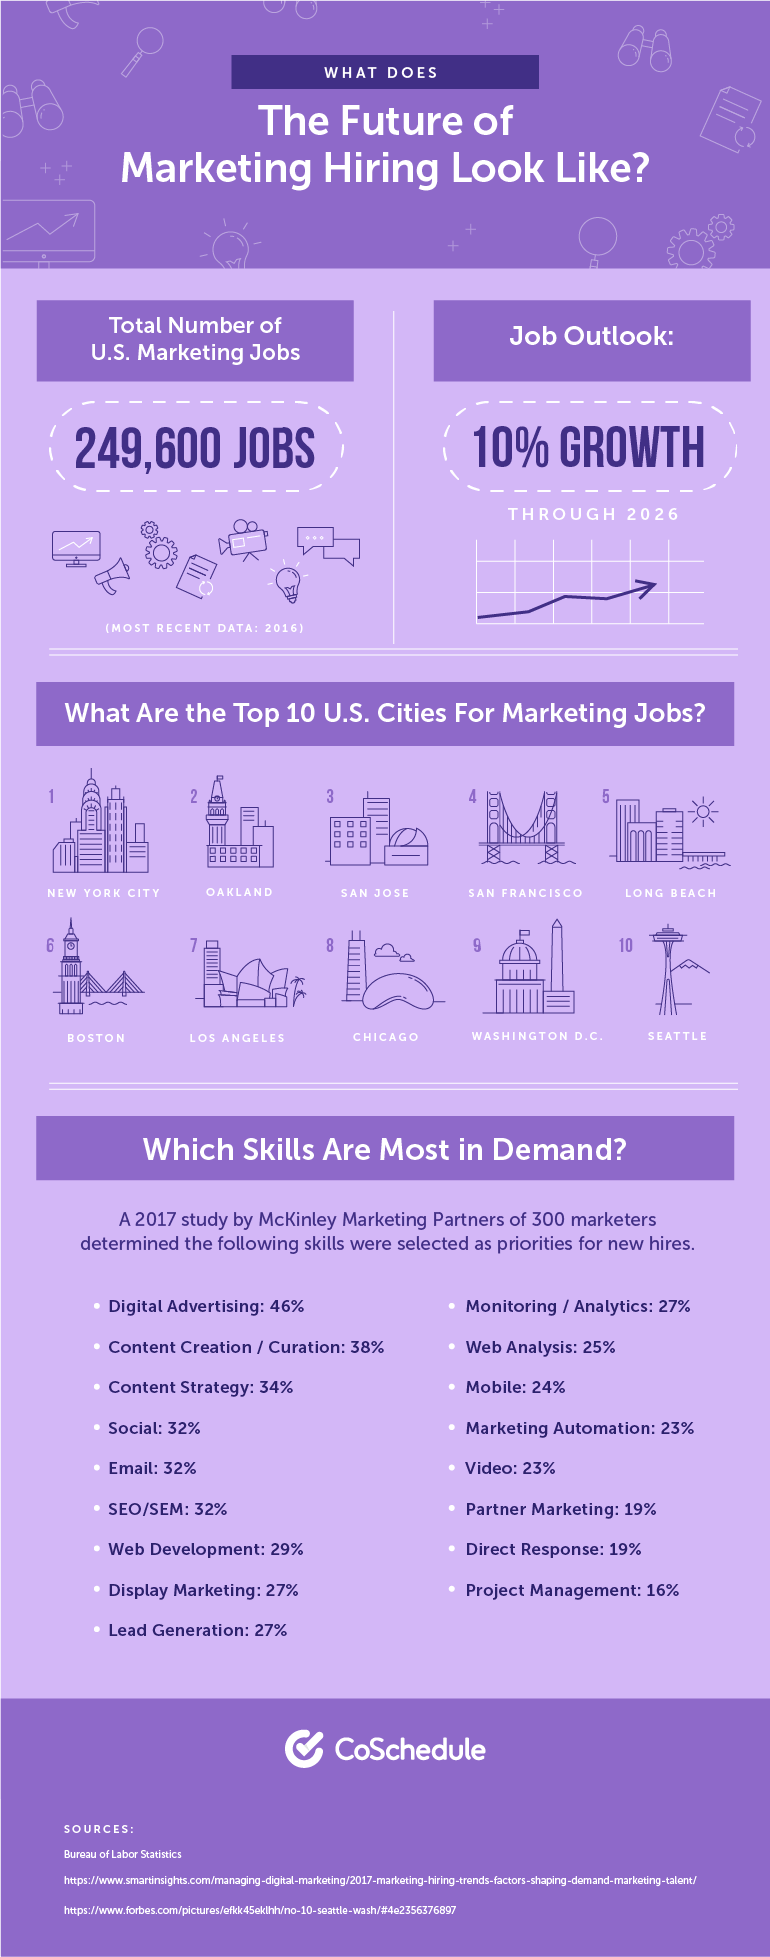 What Does the Future of Marketing Hiring Look Like?